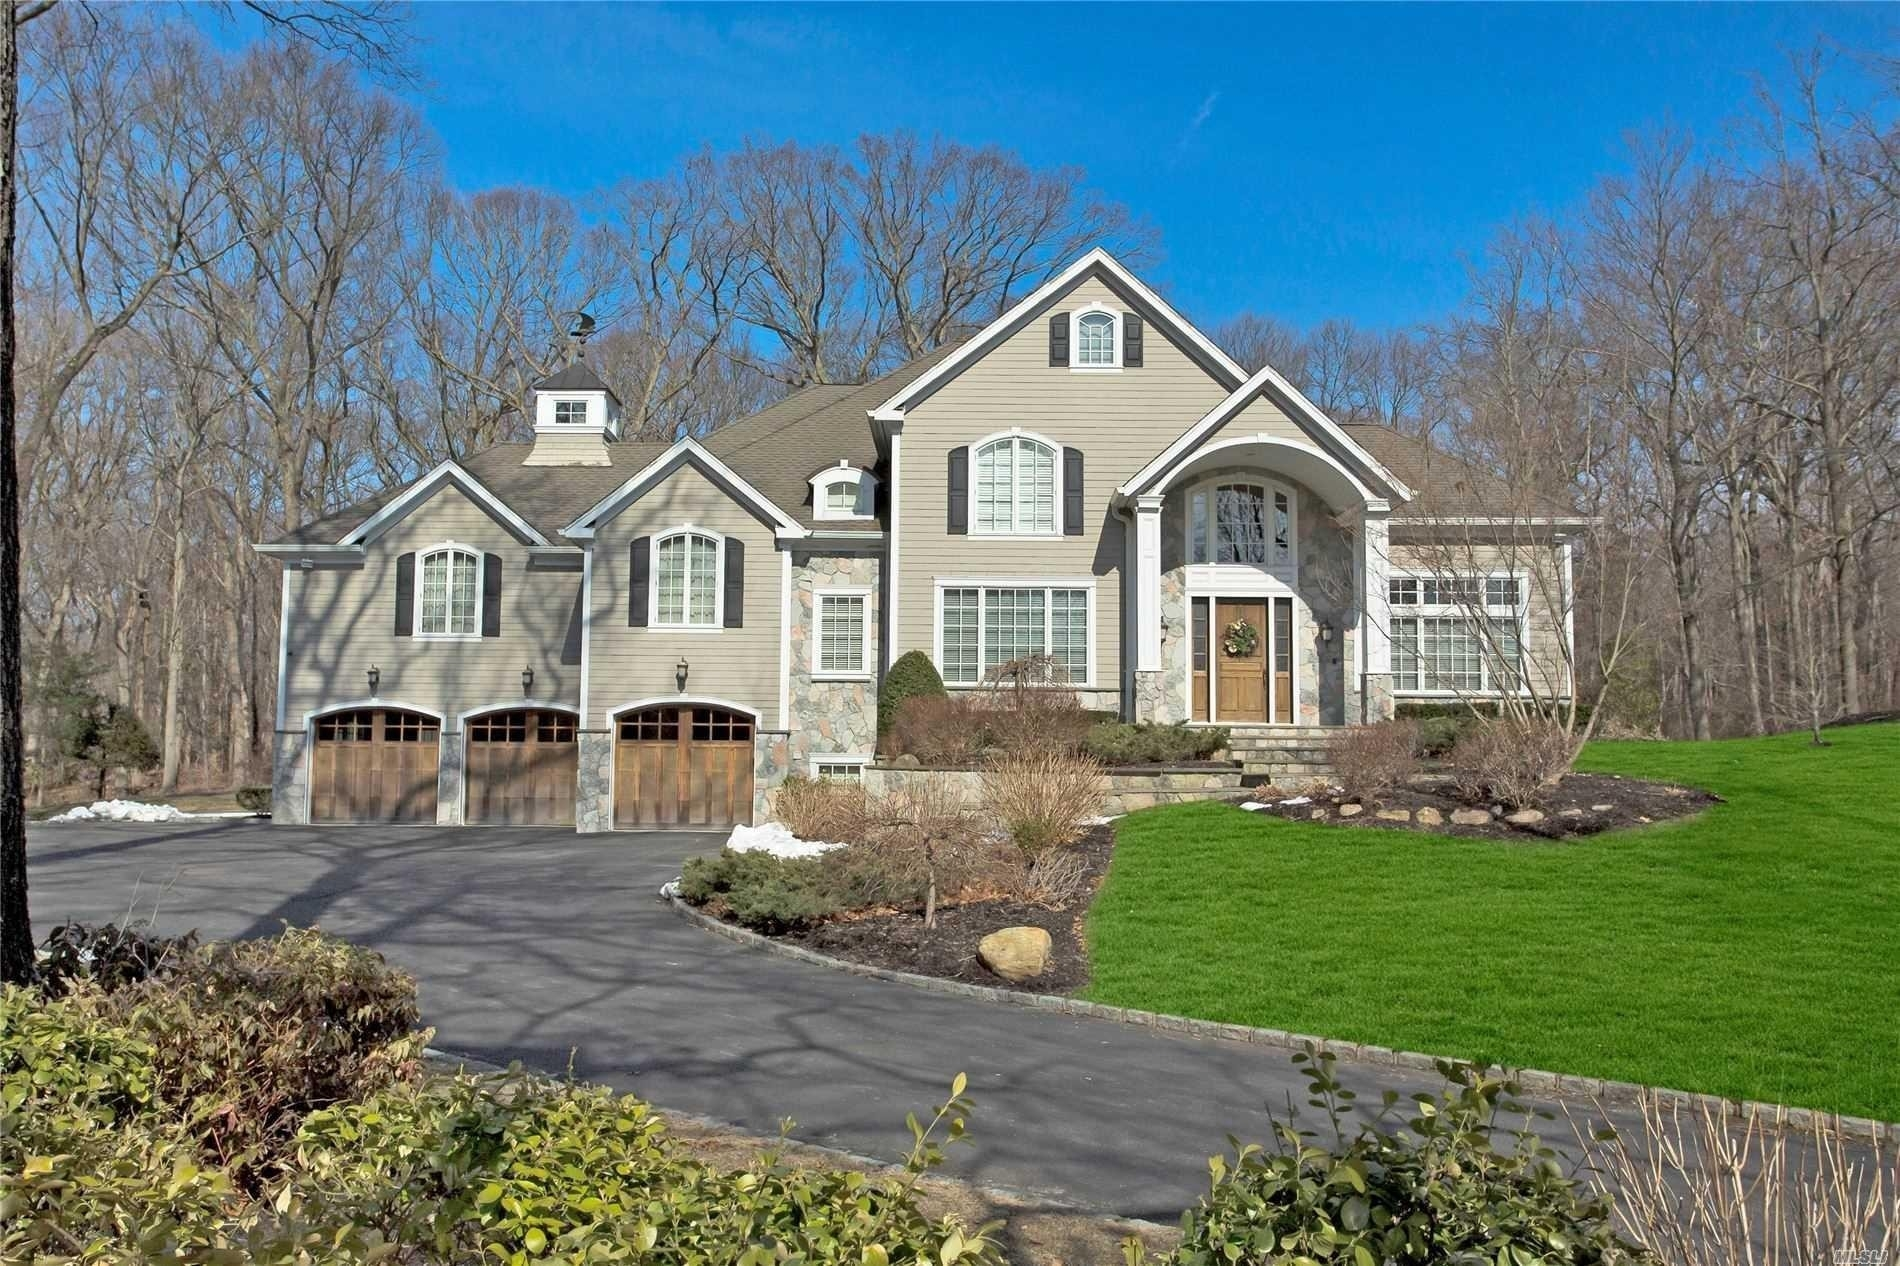 Property at Oyster Bay, Muttontown, NY 11791